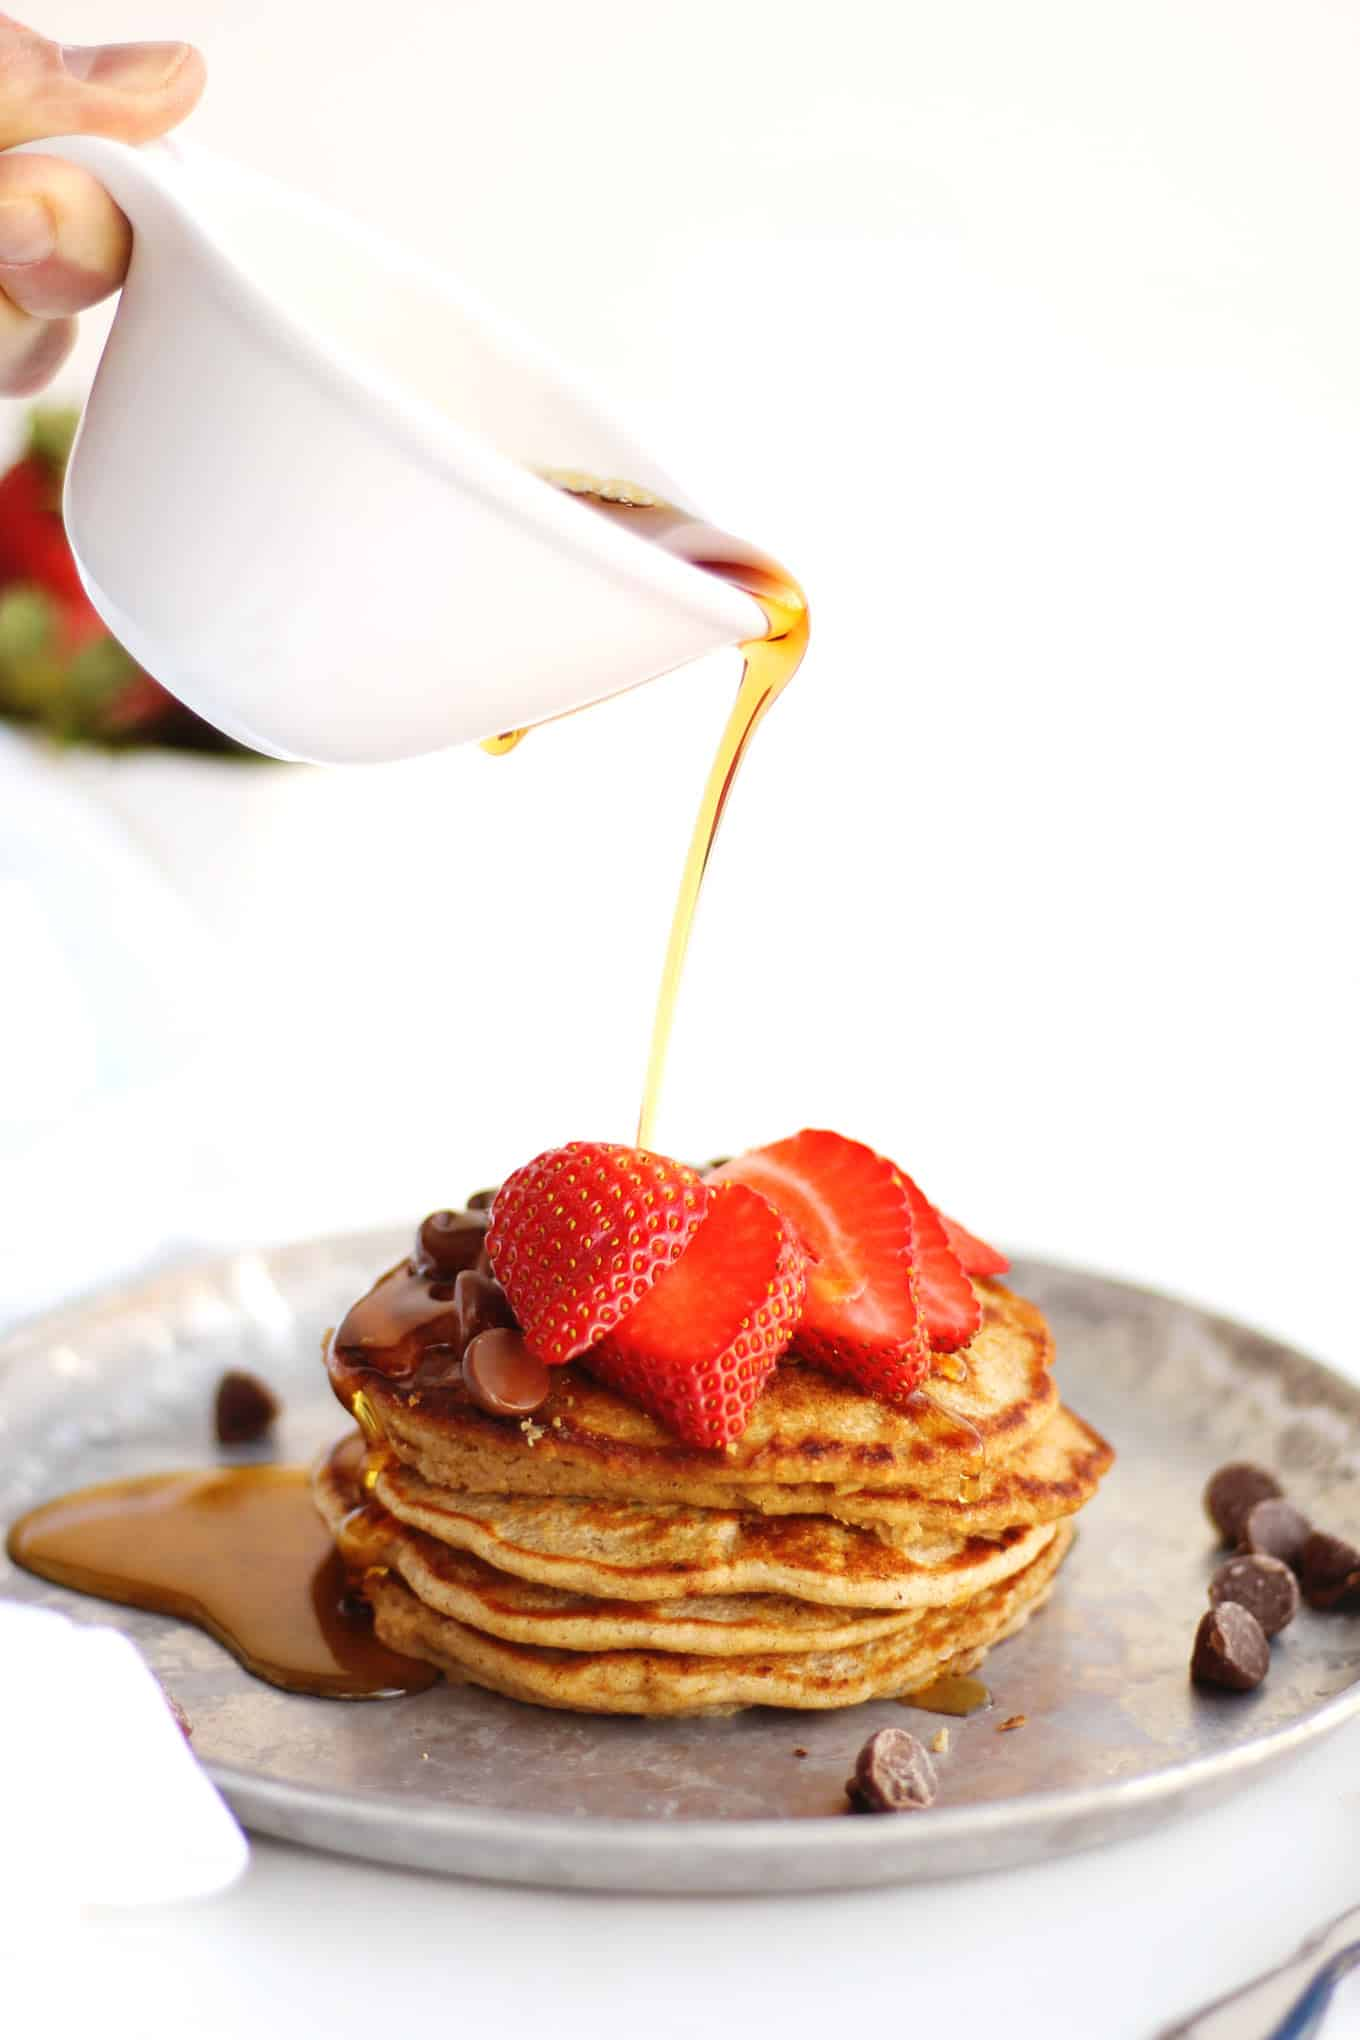 pancakes with strawberries and syrup